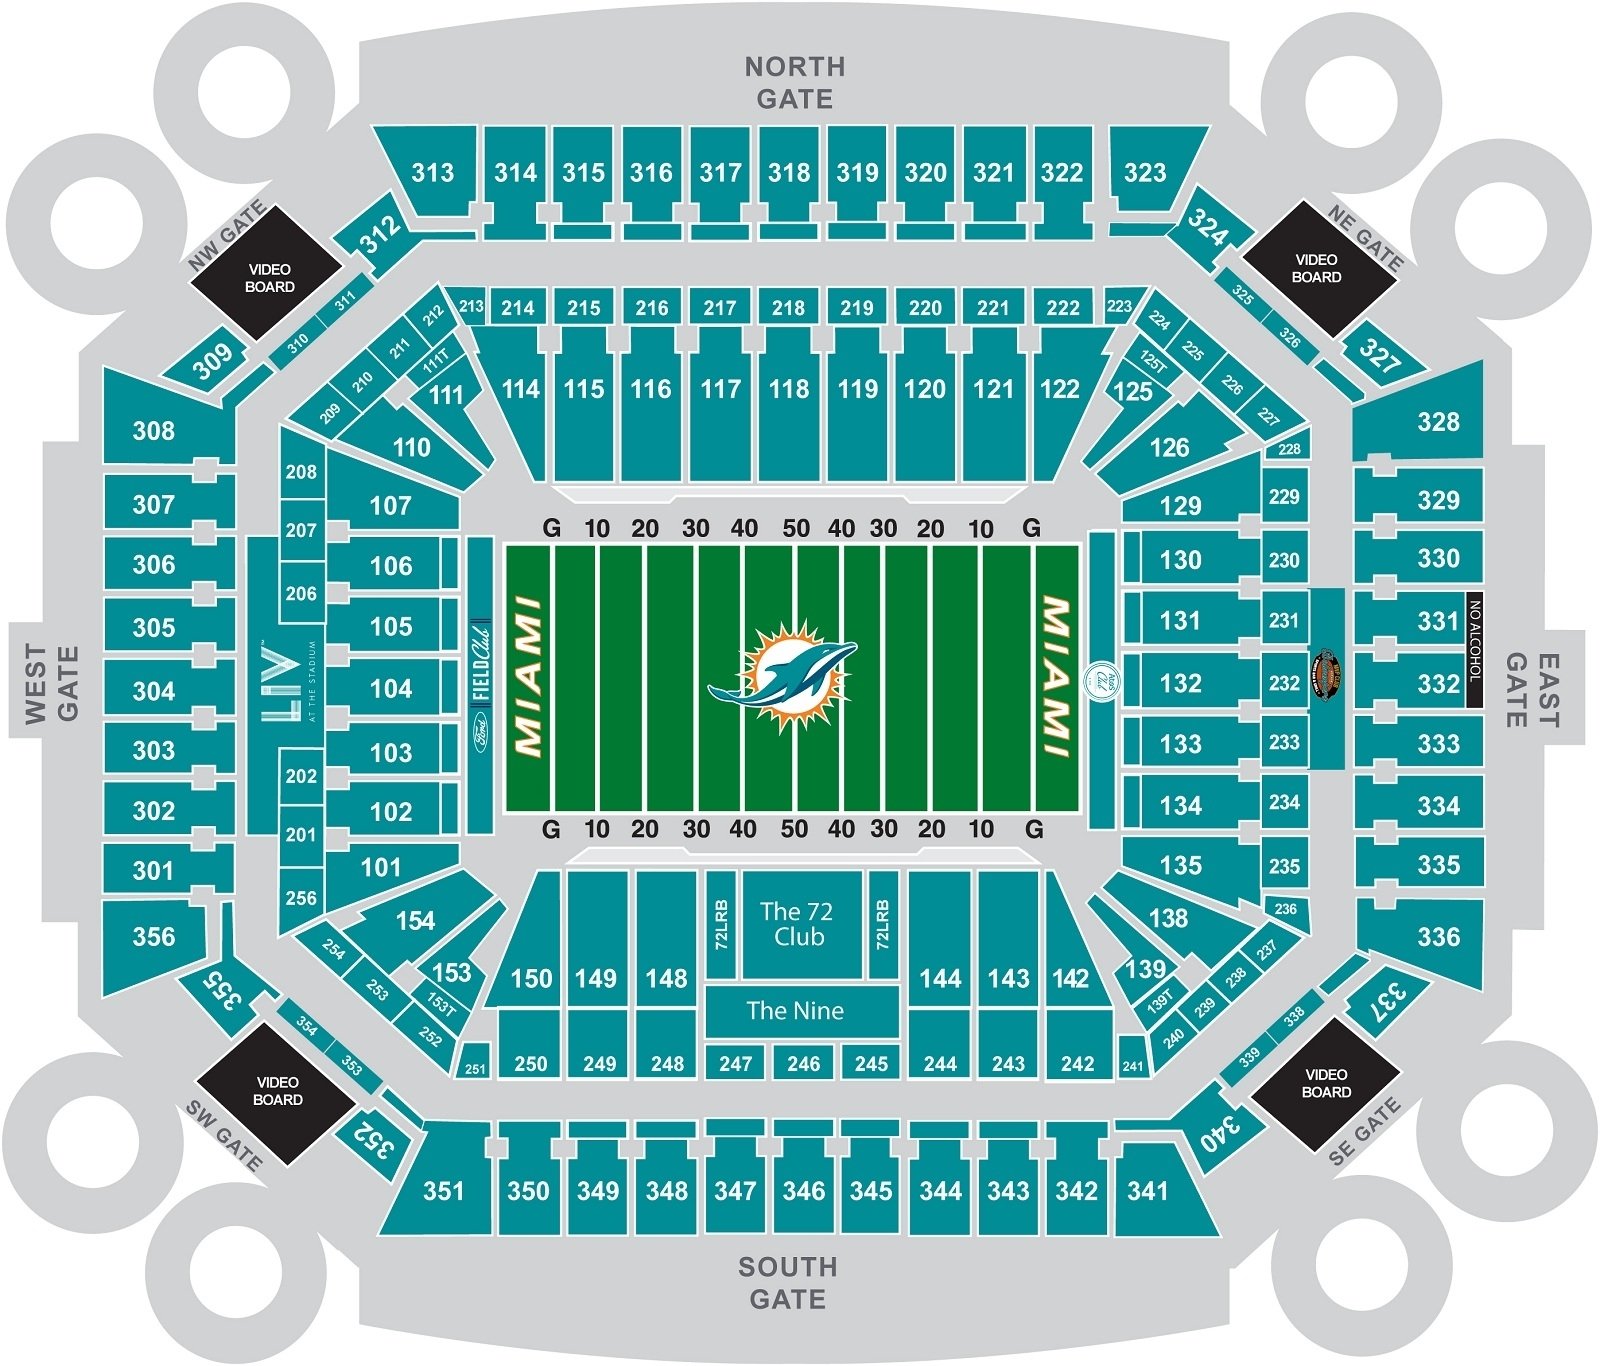 2020 Super Bowl Seating Chart   February 2, 2020   Fan intended for Seating Capacity At Super Bowl 2019